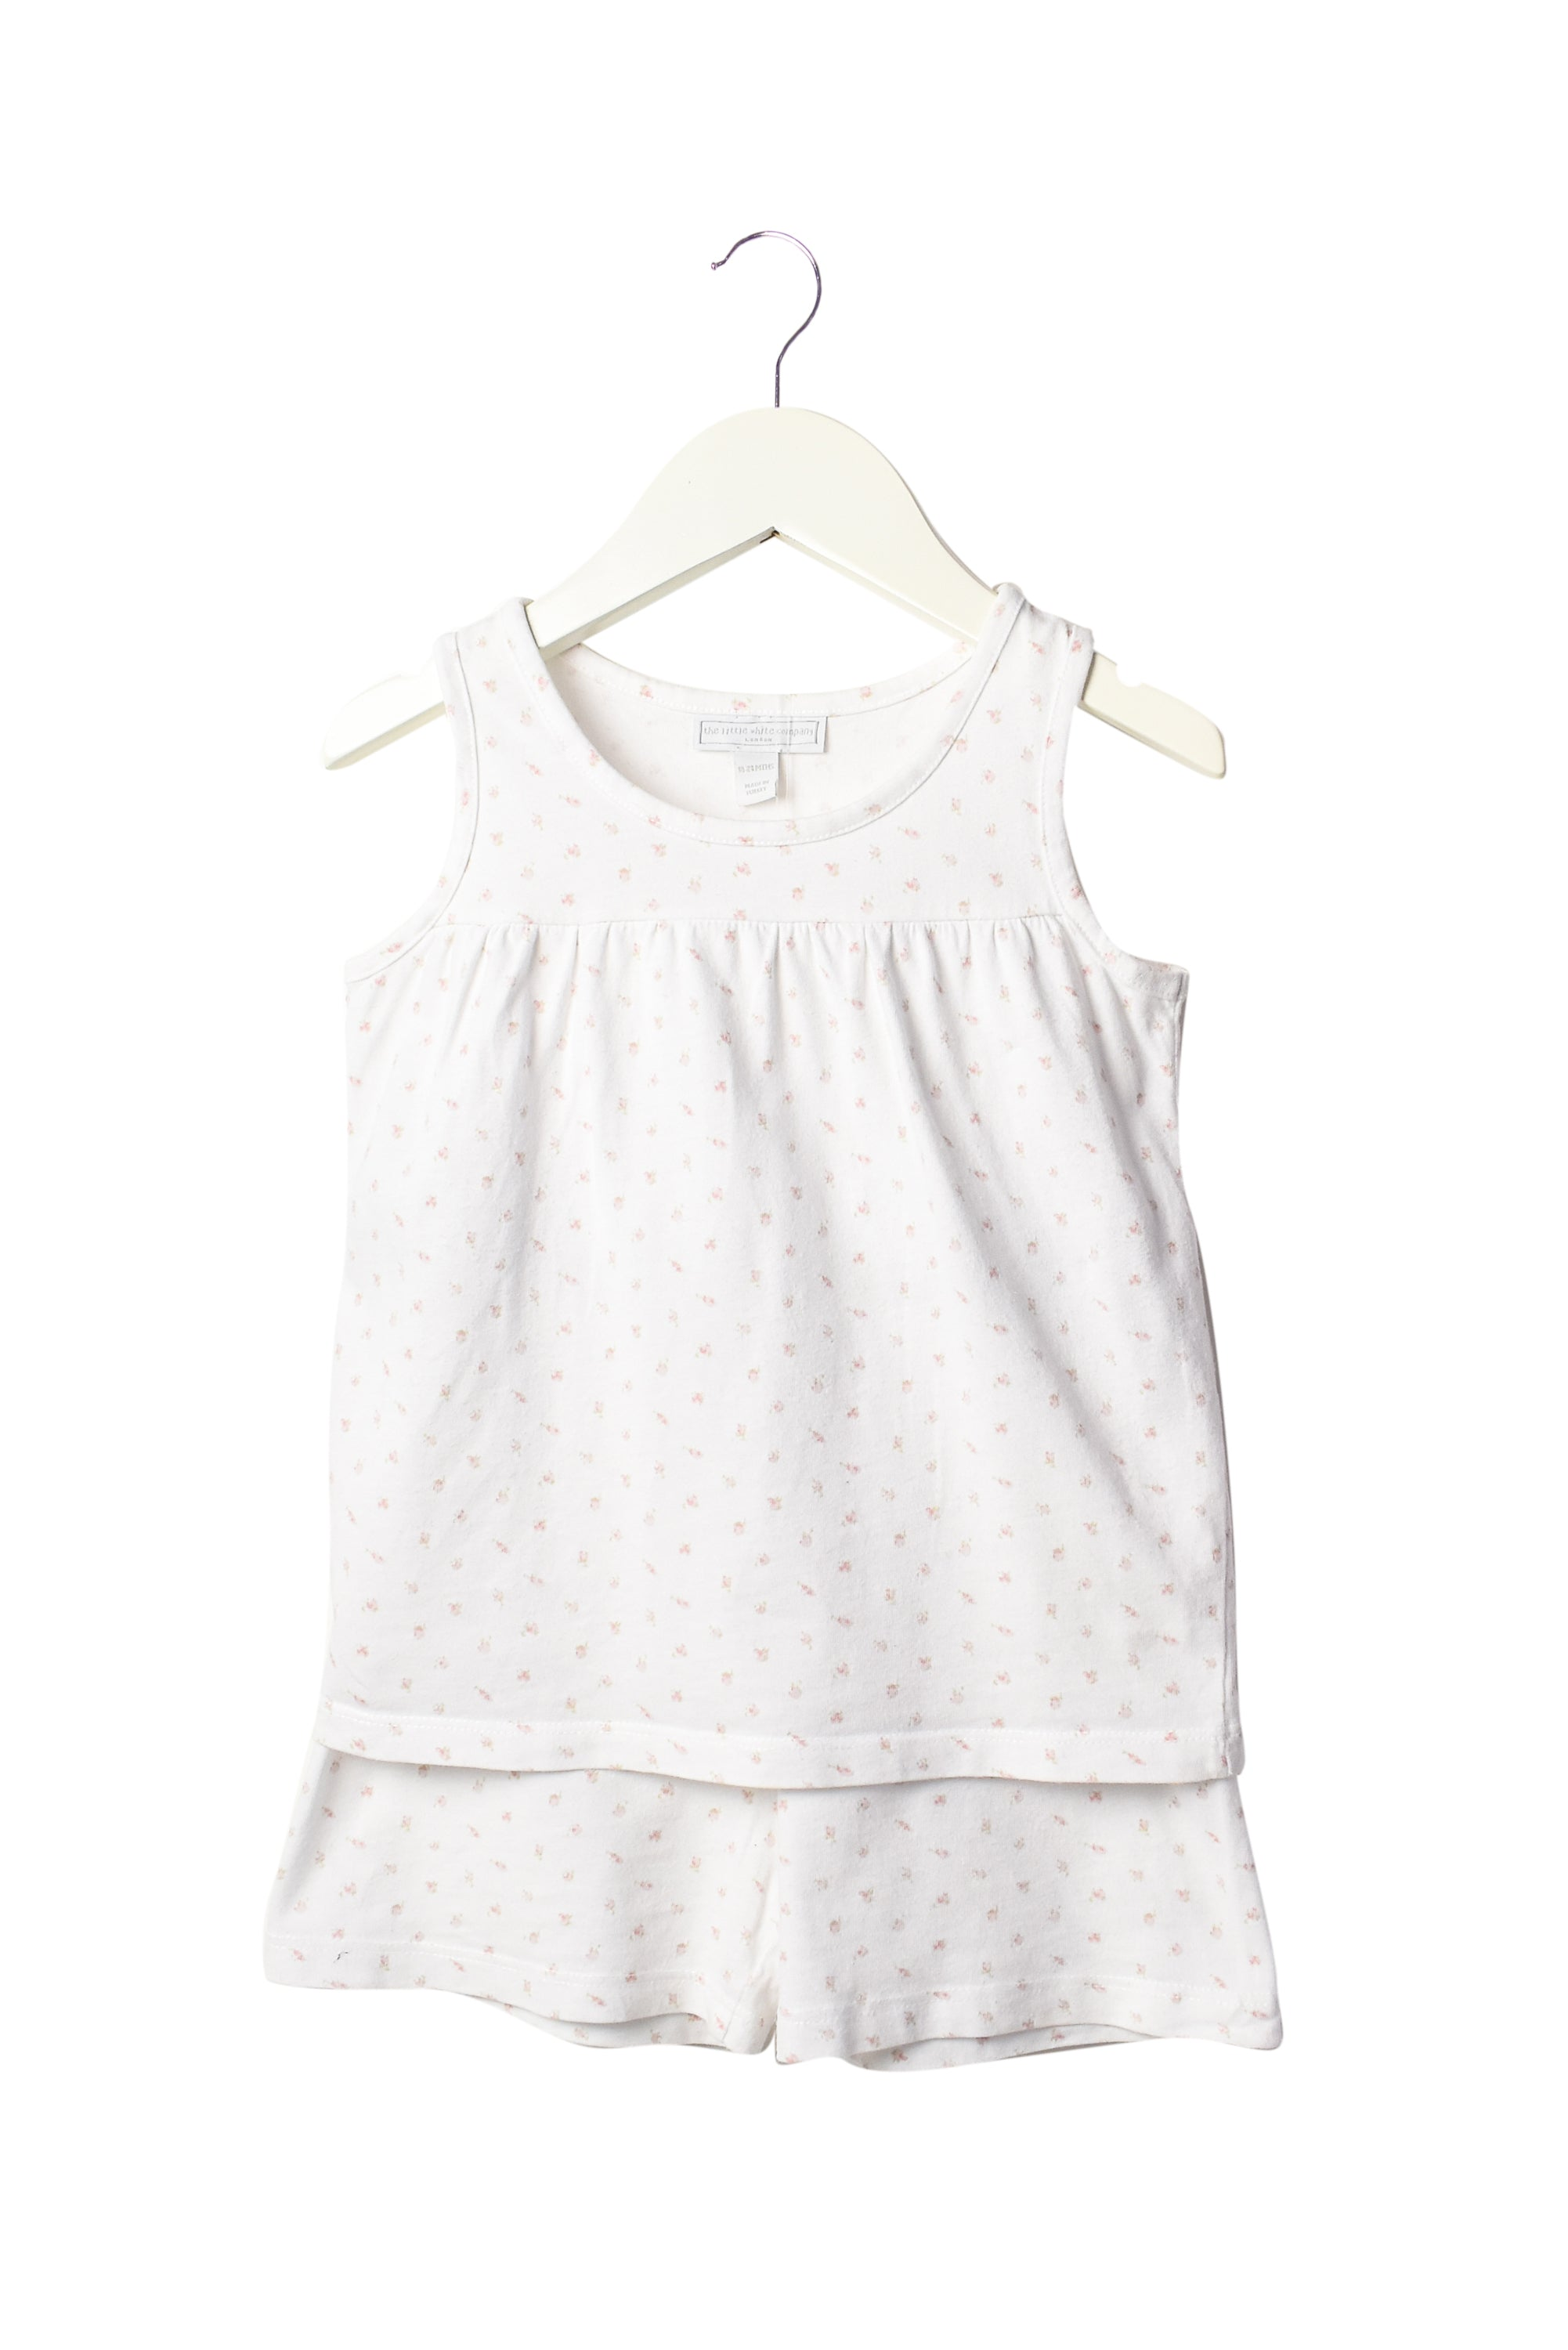 10006394 The Little White Company Baby~Pyjamas 18-24M at Retykle